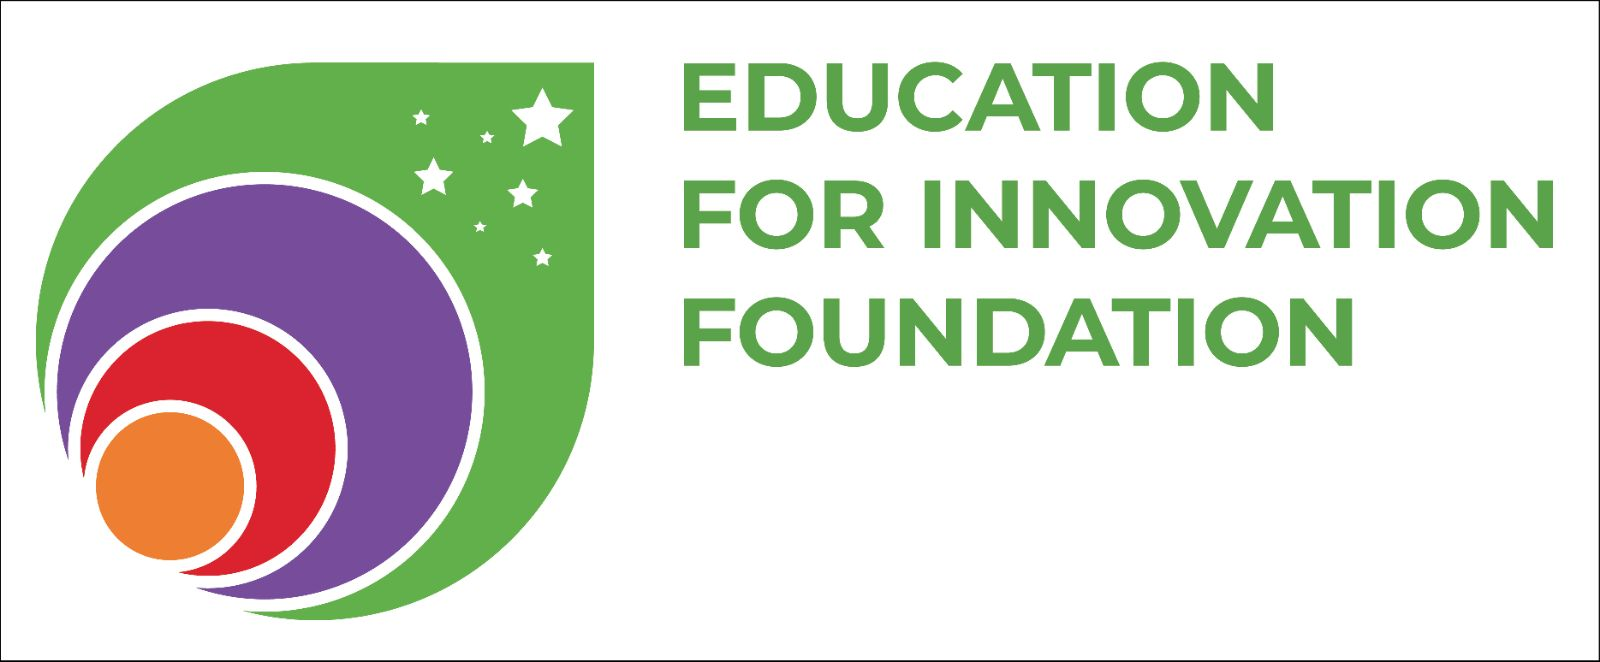 Education for Innovation Foundation